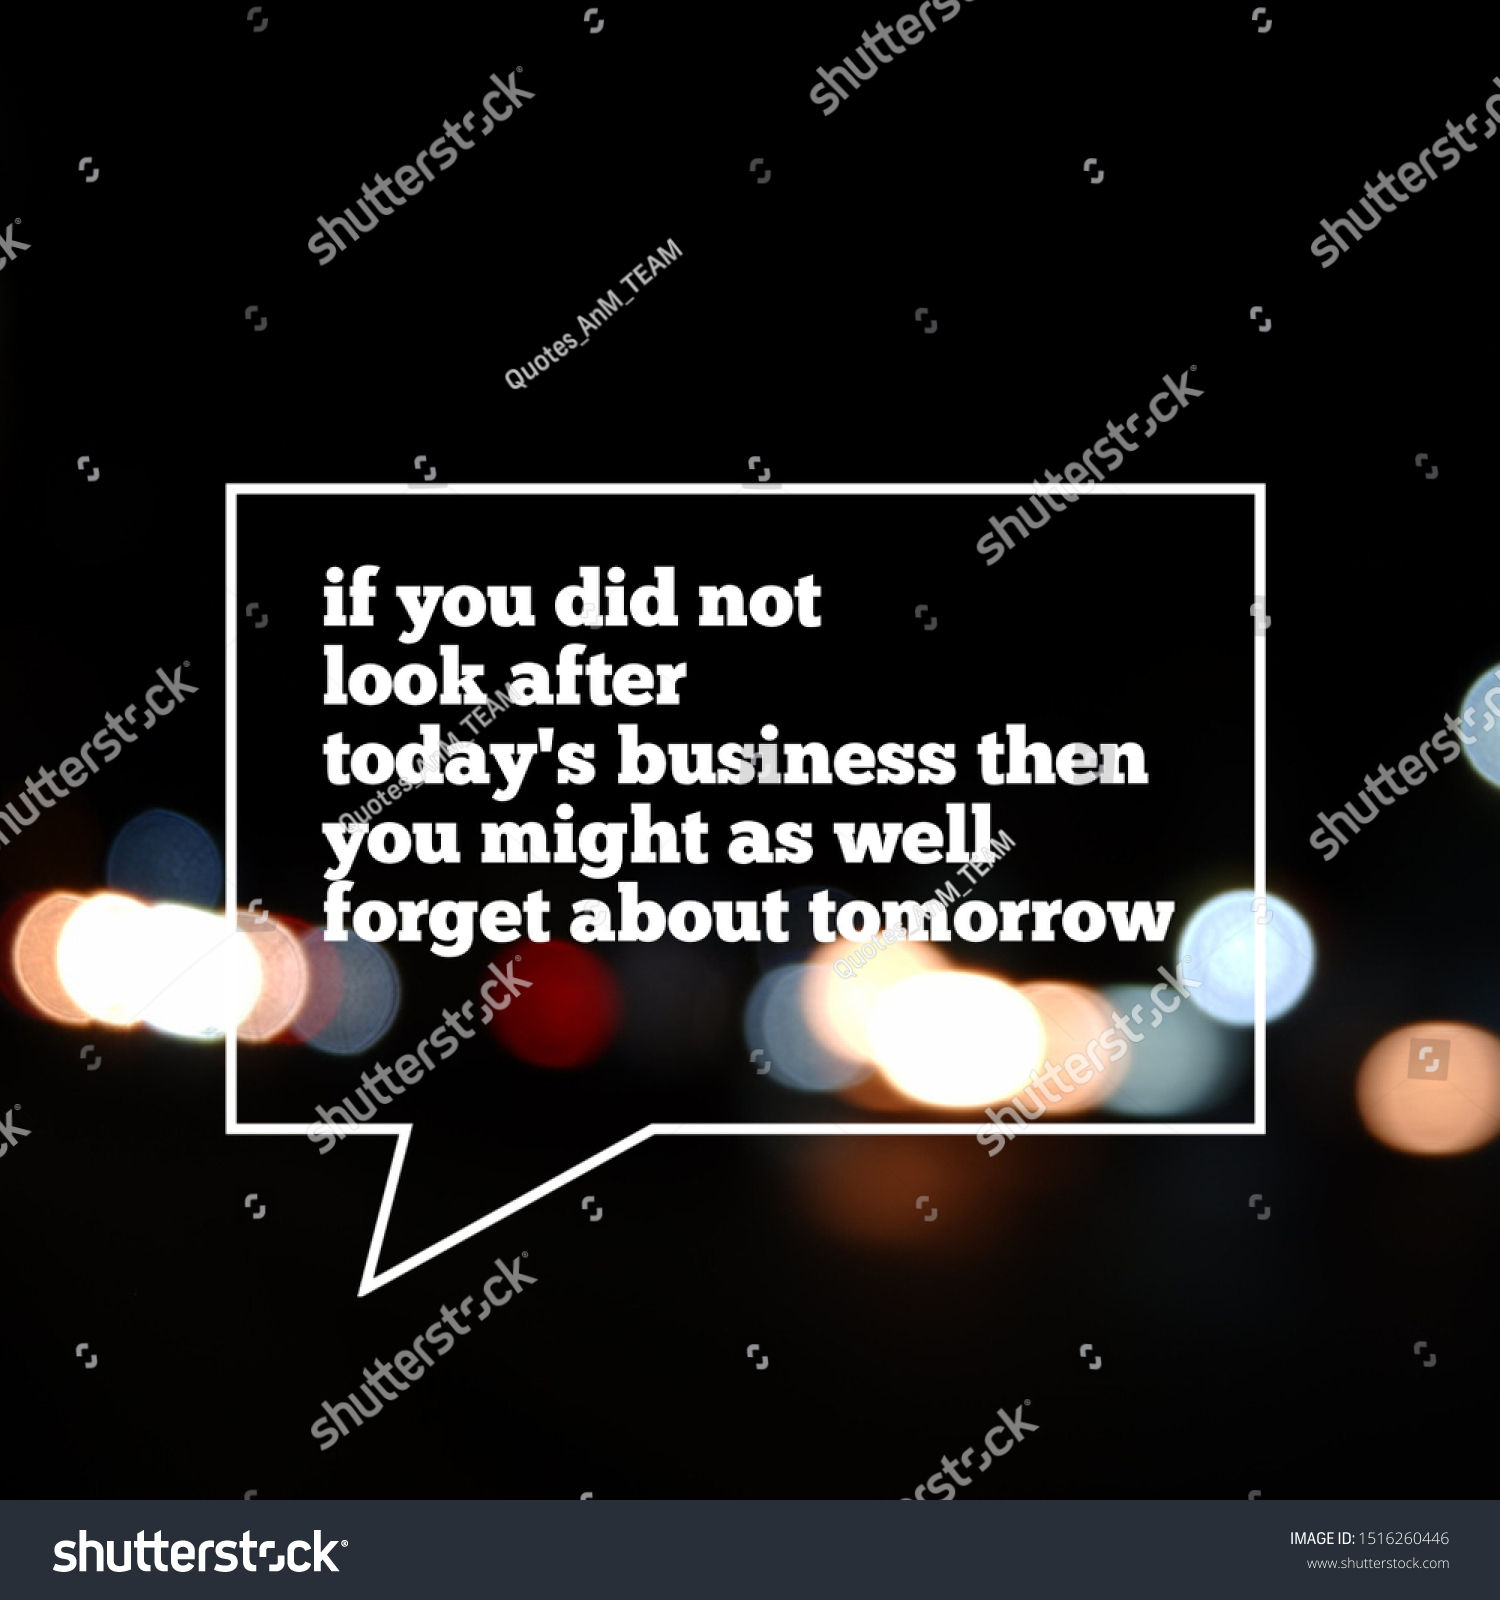 motivational quotes business quotes entrepreneur quotes stock